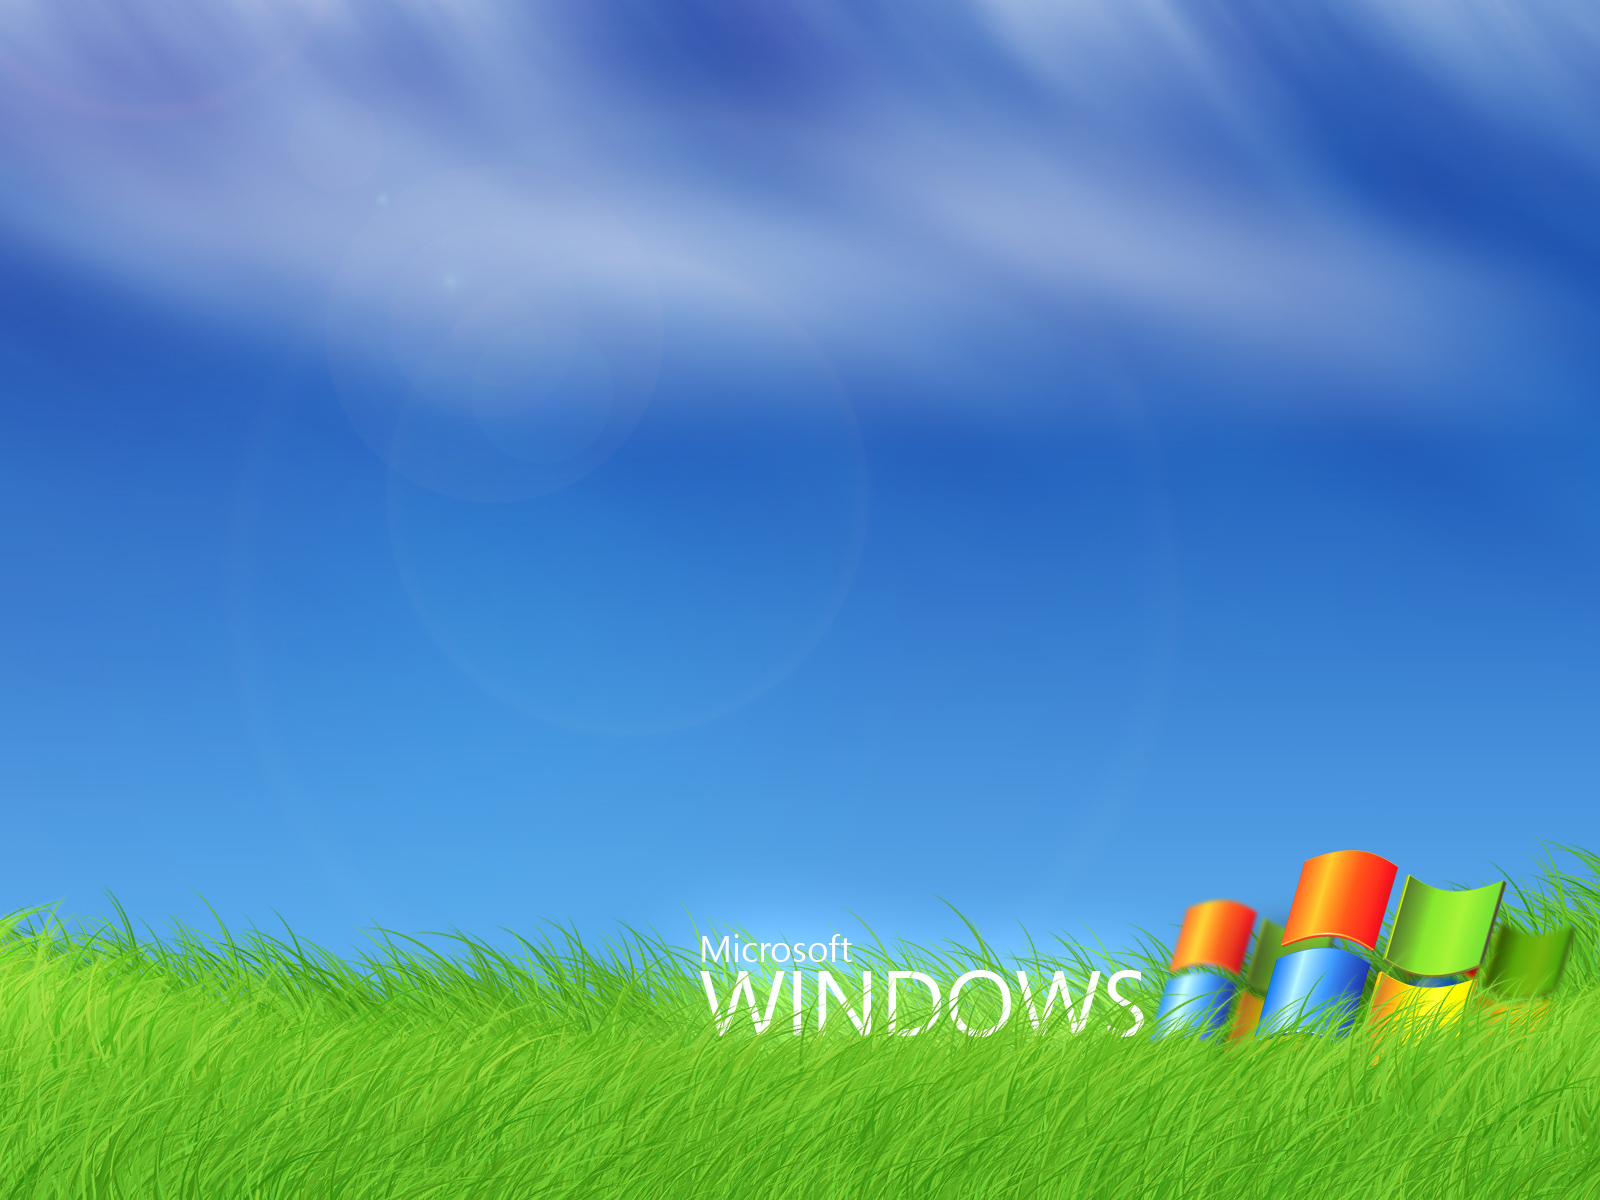 Microsoft Windows XP Wallpaper Desktop 13706 Wallpaper 1600x1200